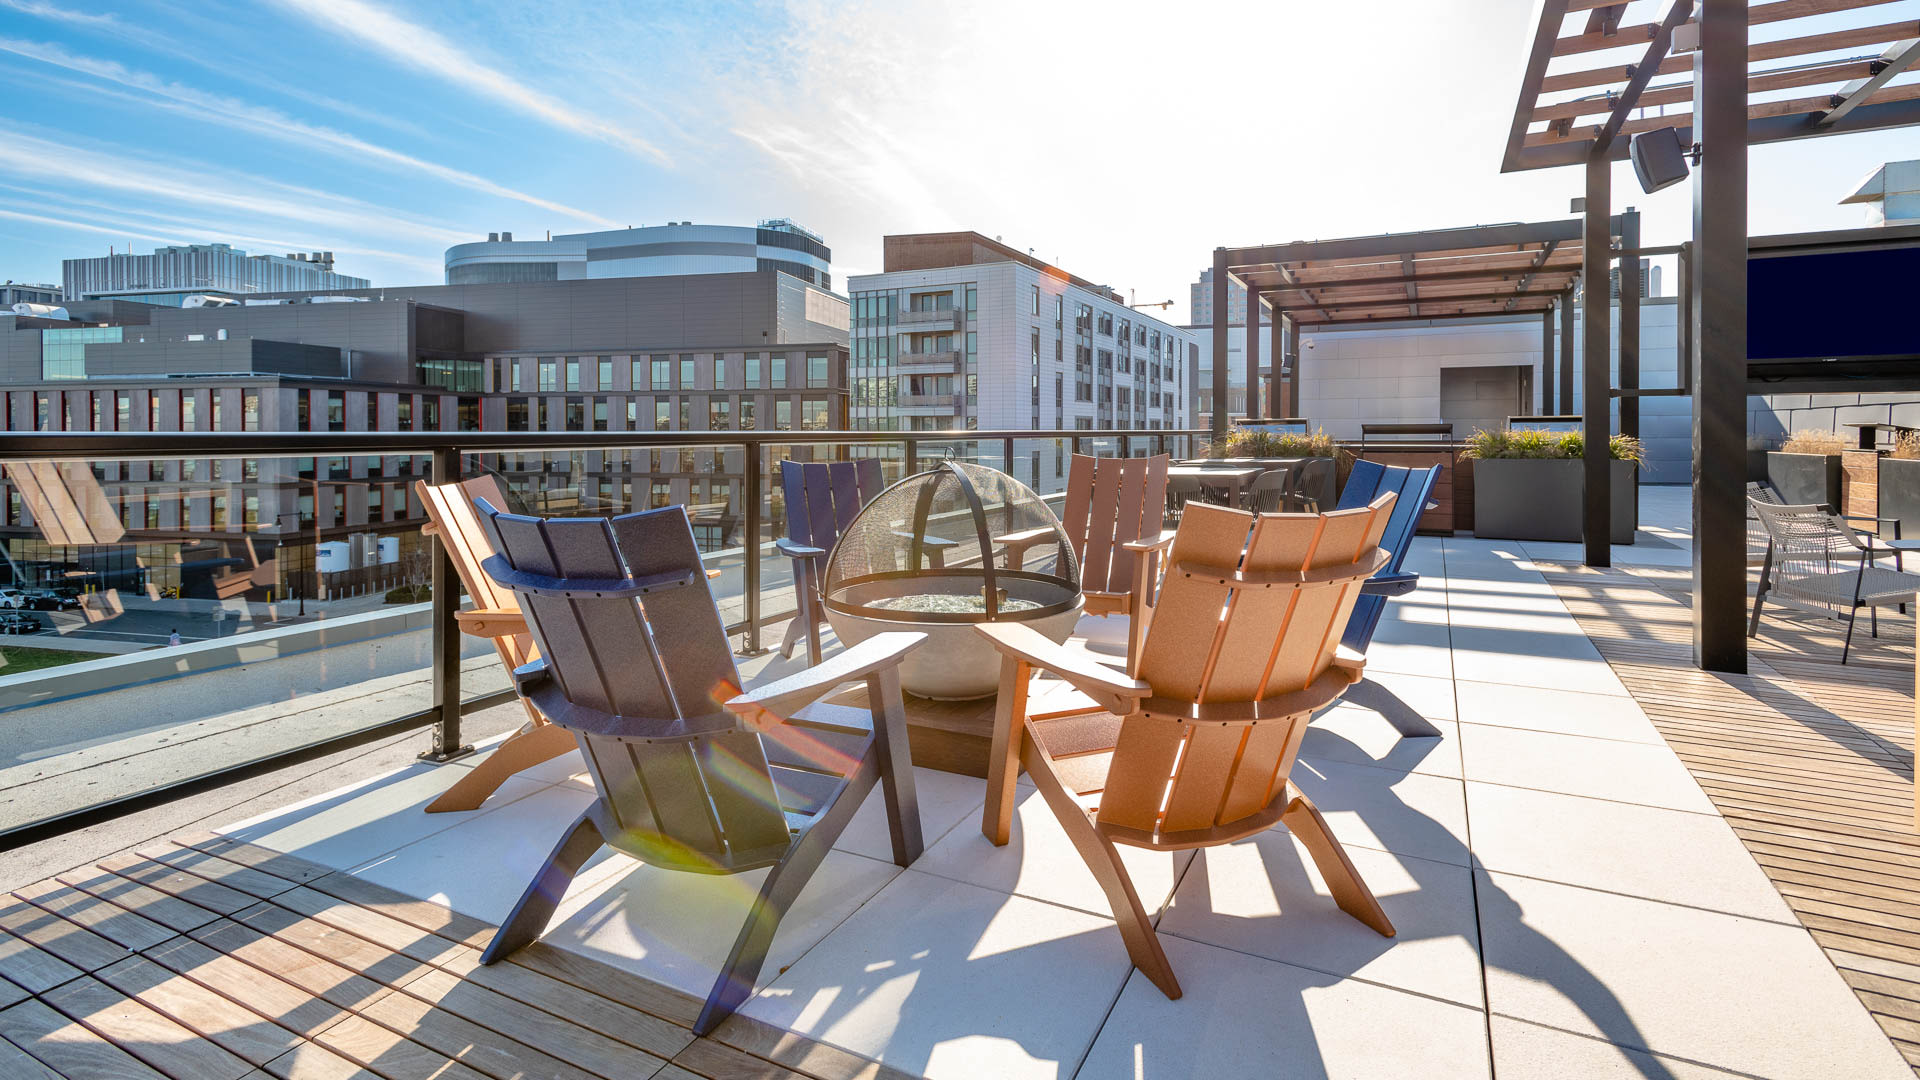 Lofts at Kendall Square Apartments - Rooftop Lounge